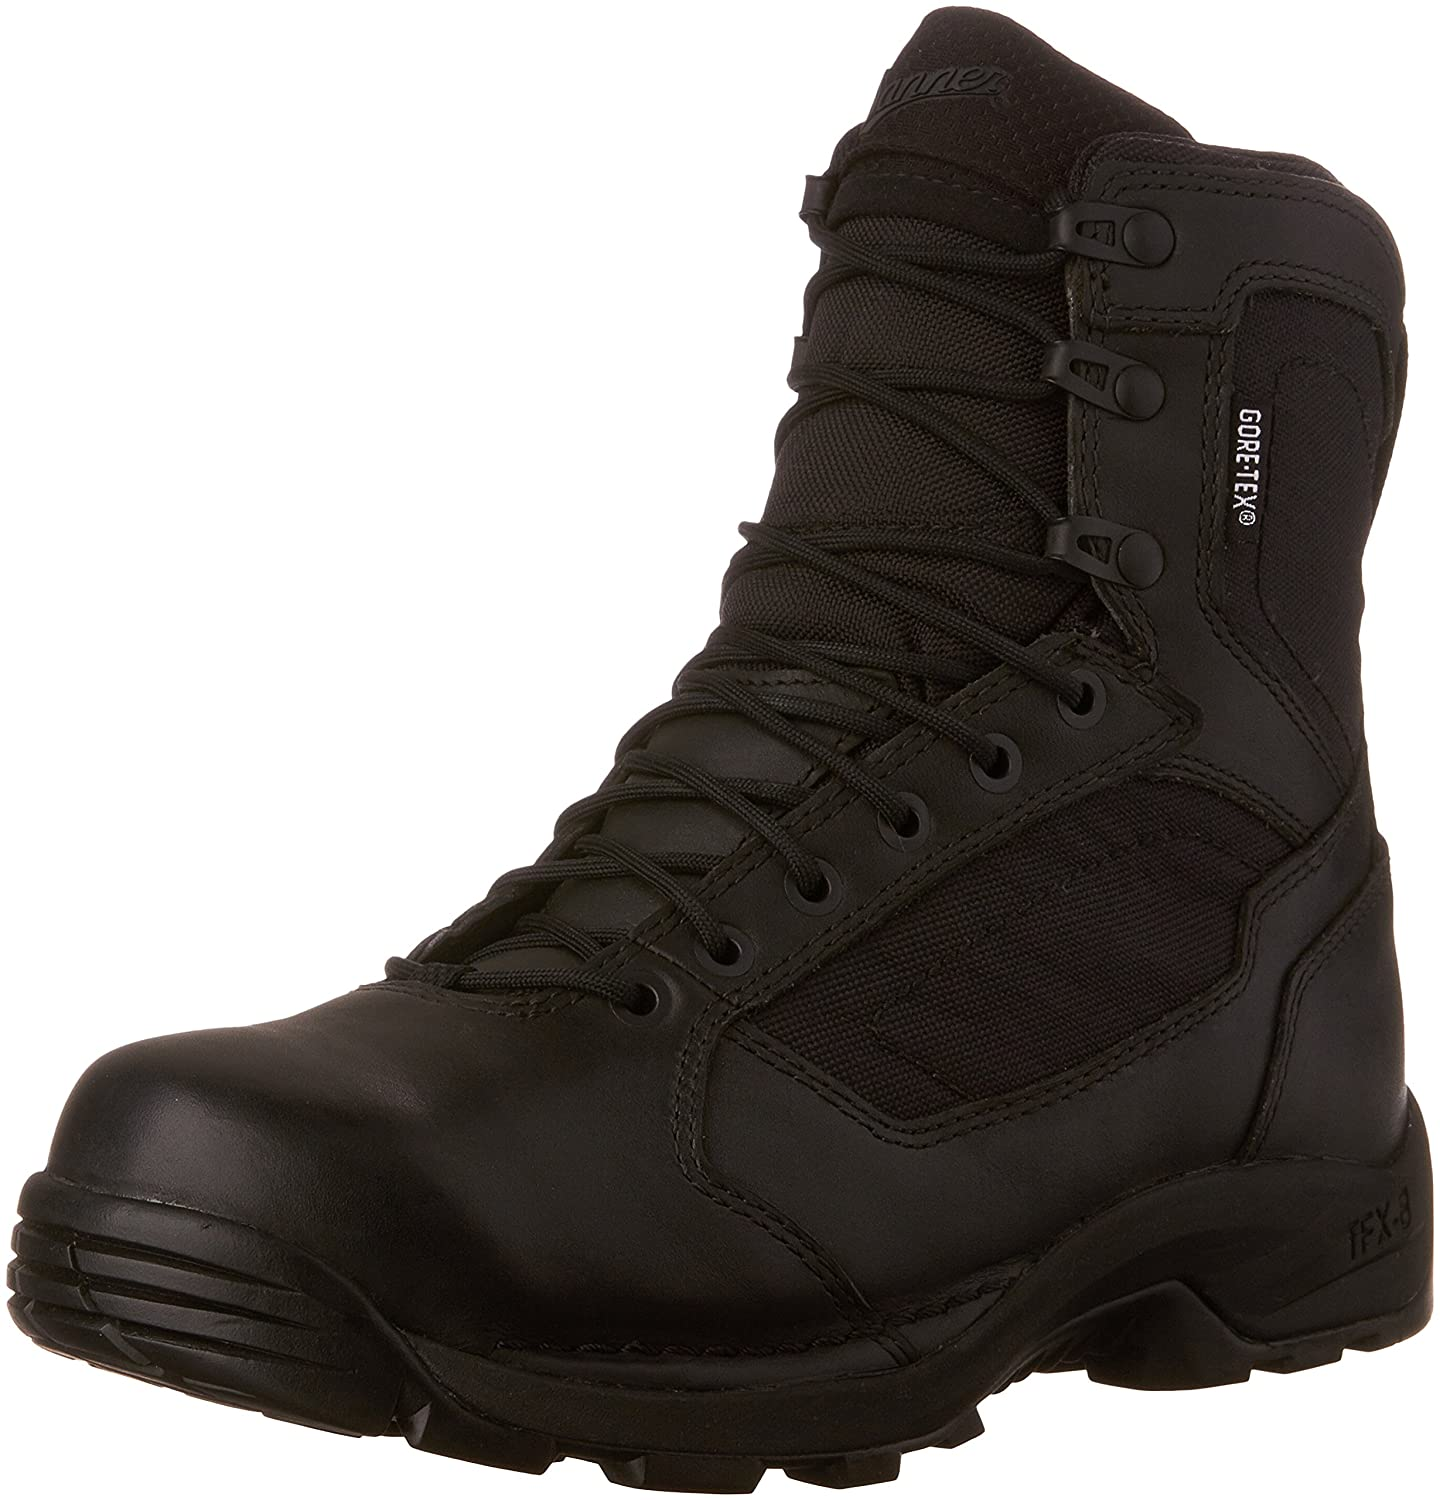 Danner Men's Striker Torrent 6